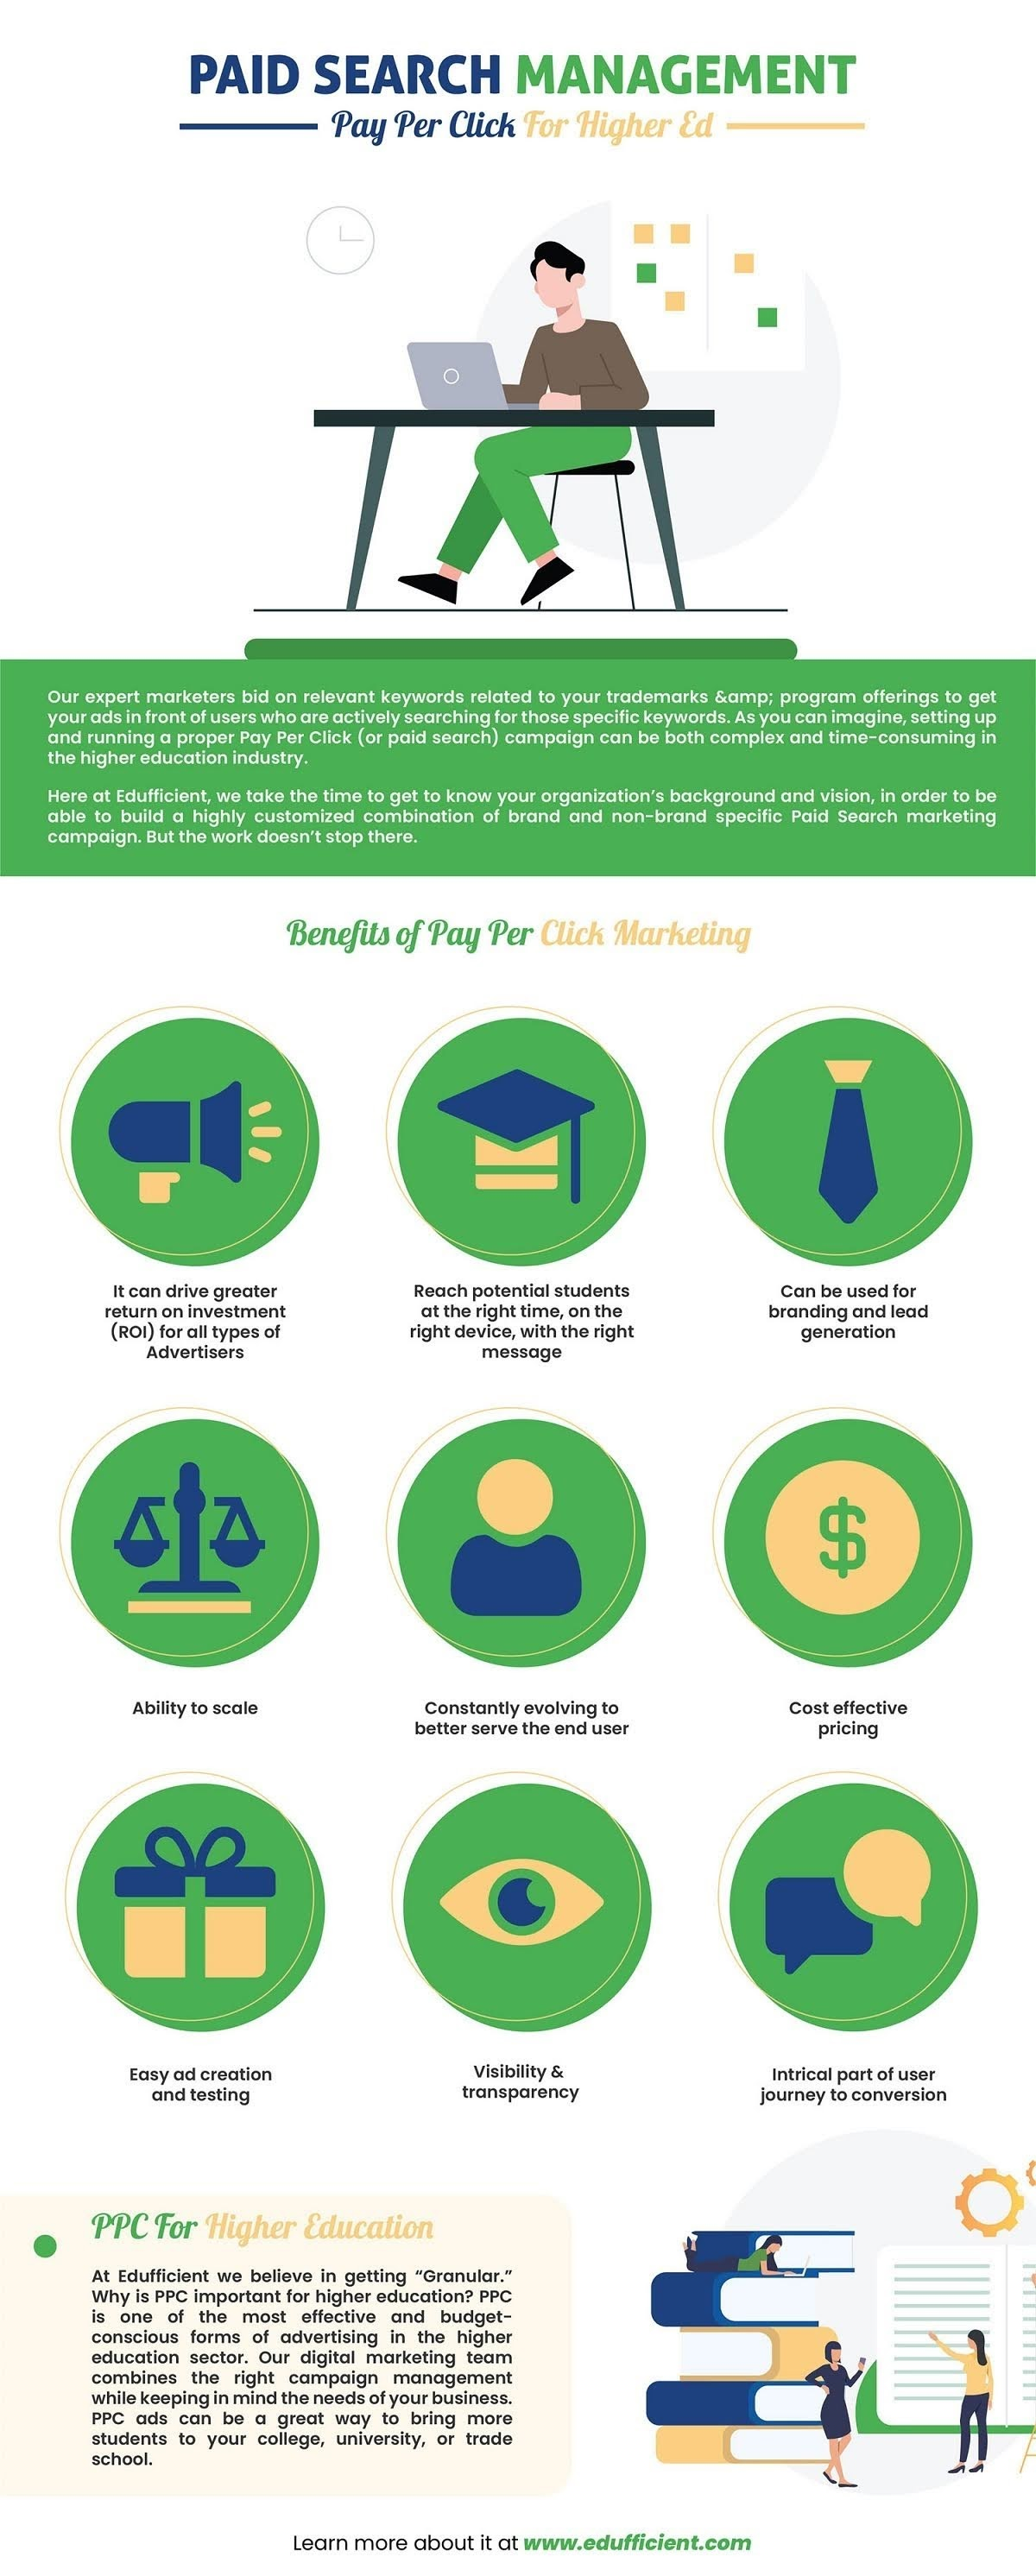 PPC Education – Paid Search Management – Pay Per Click For Higher Ed #infographic